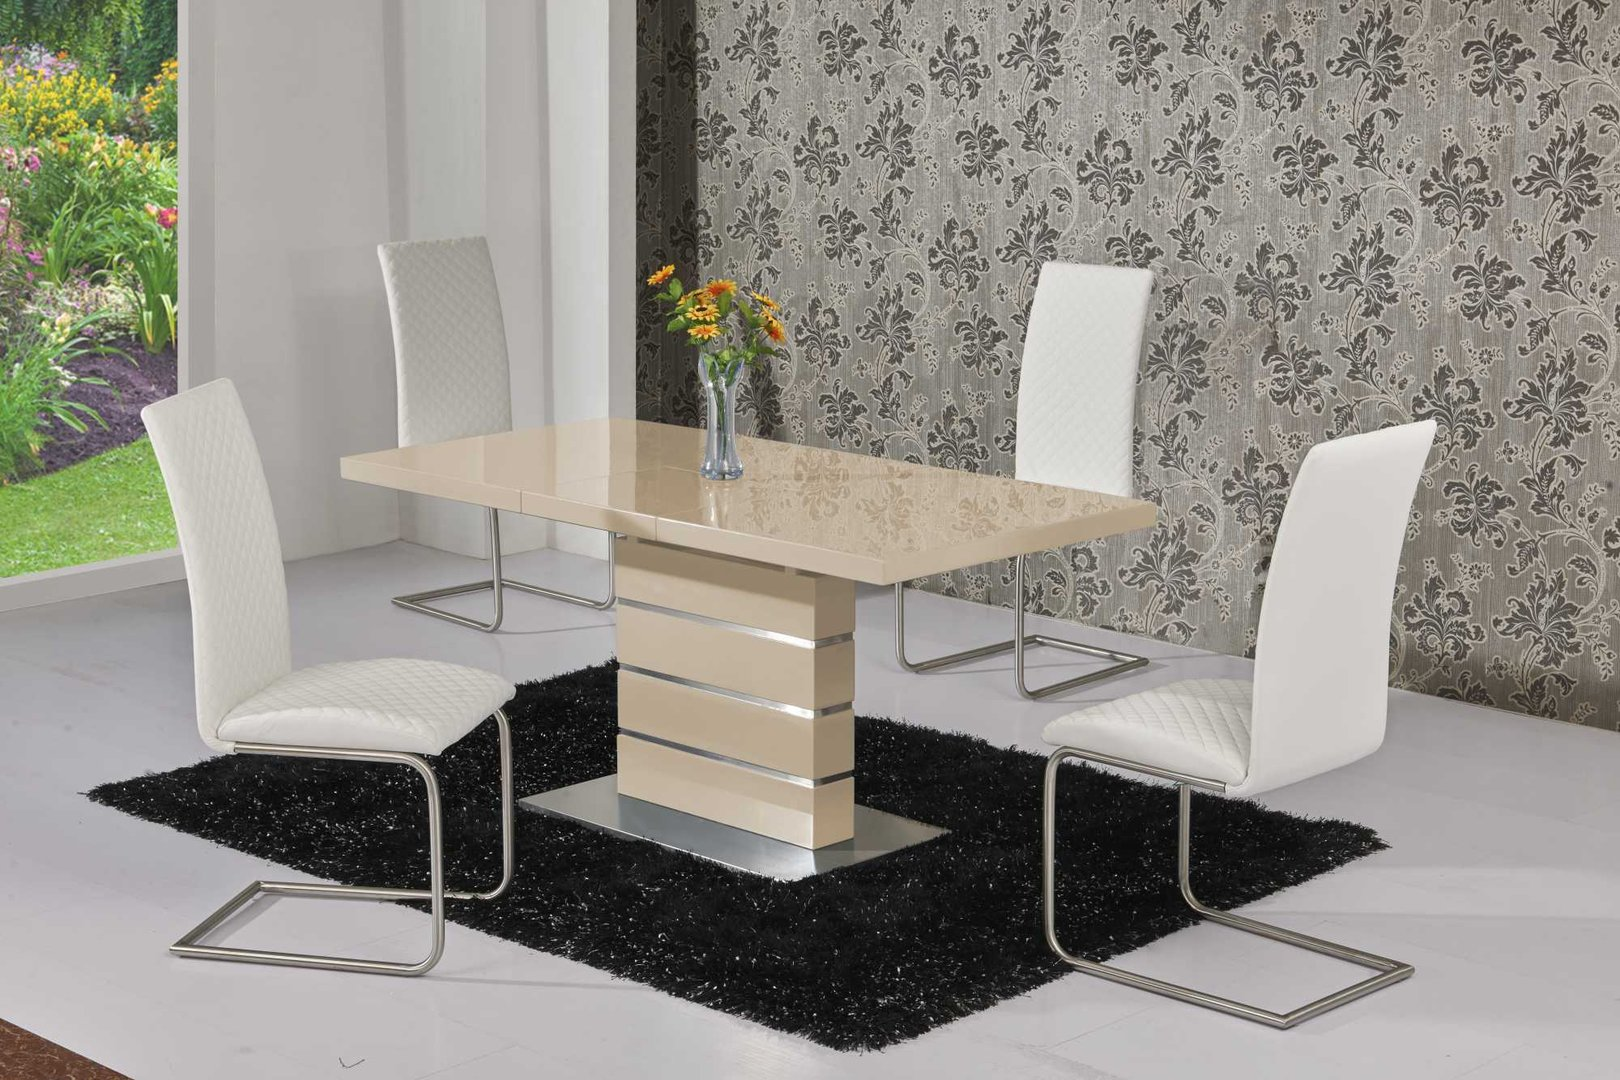 Extending Cream High Gloss Dining Table And 4 White Chairs